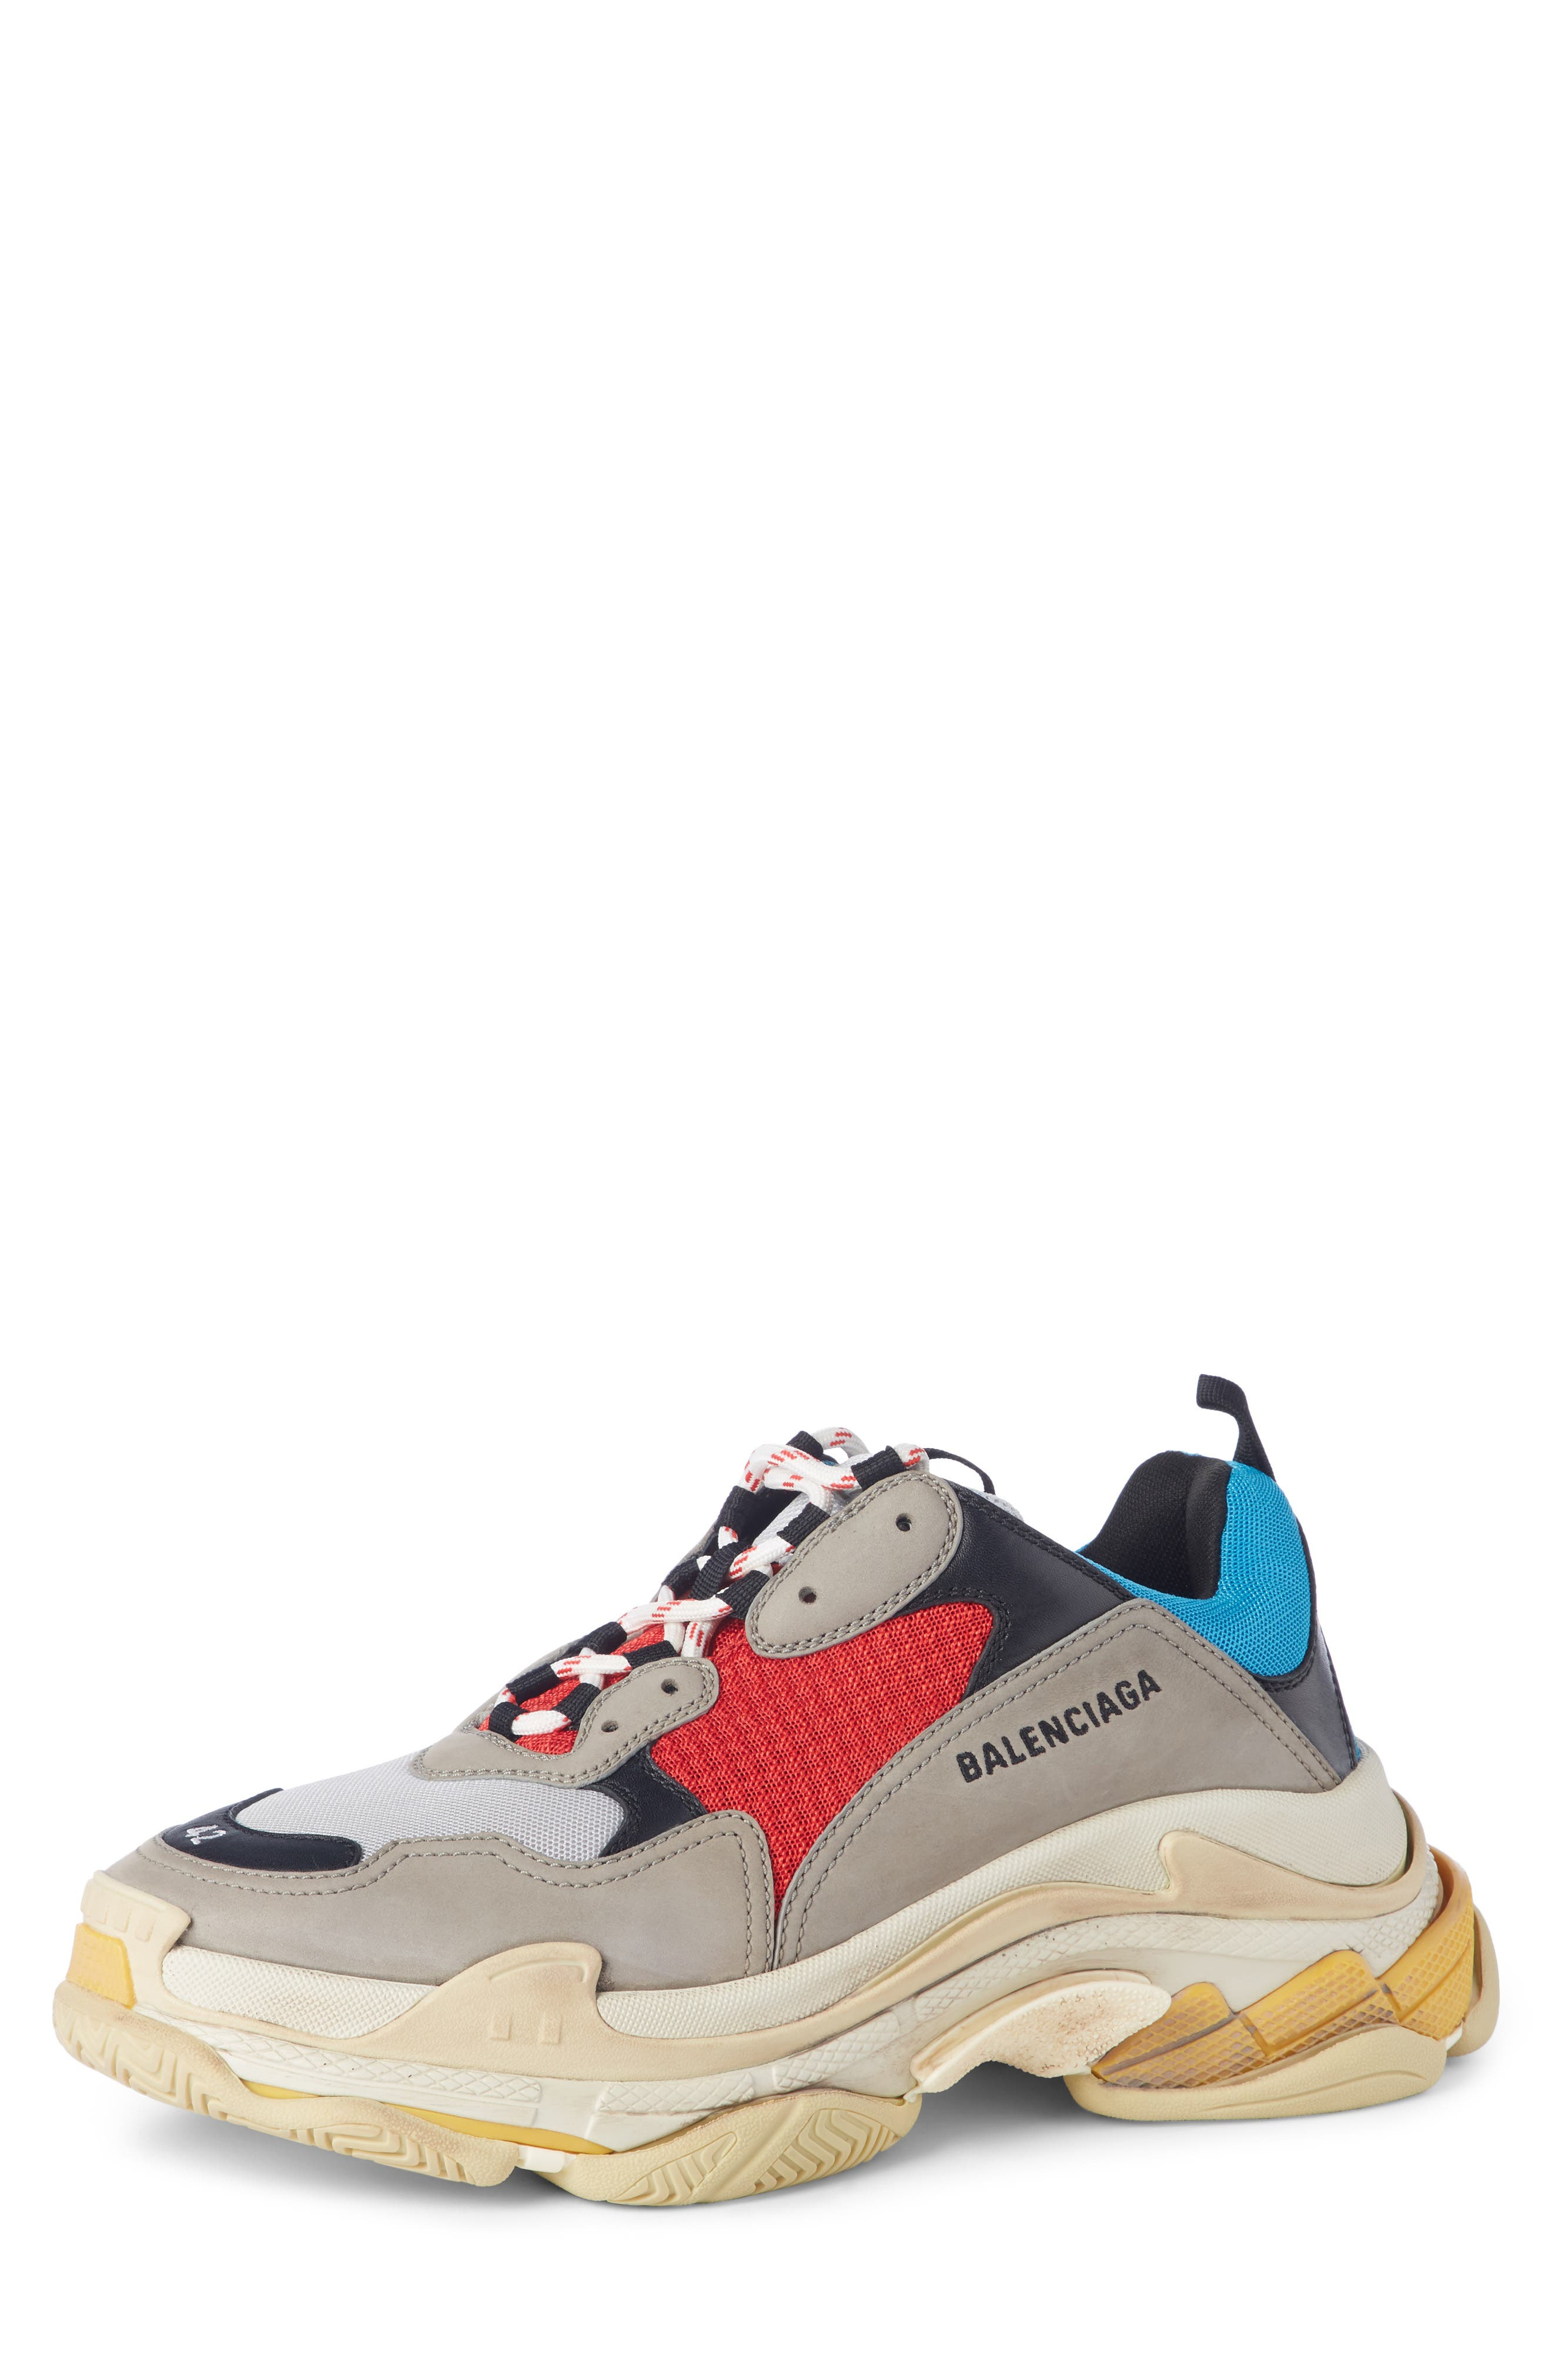 Triple S Retro Sneaker,                         Main,                         color, Beige